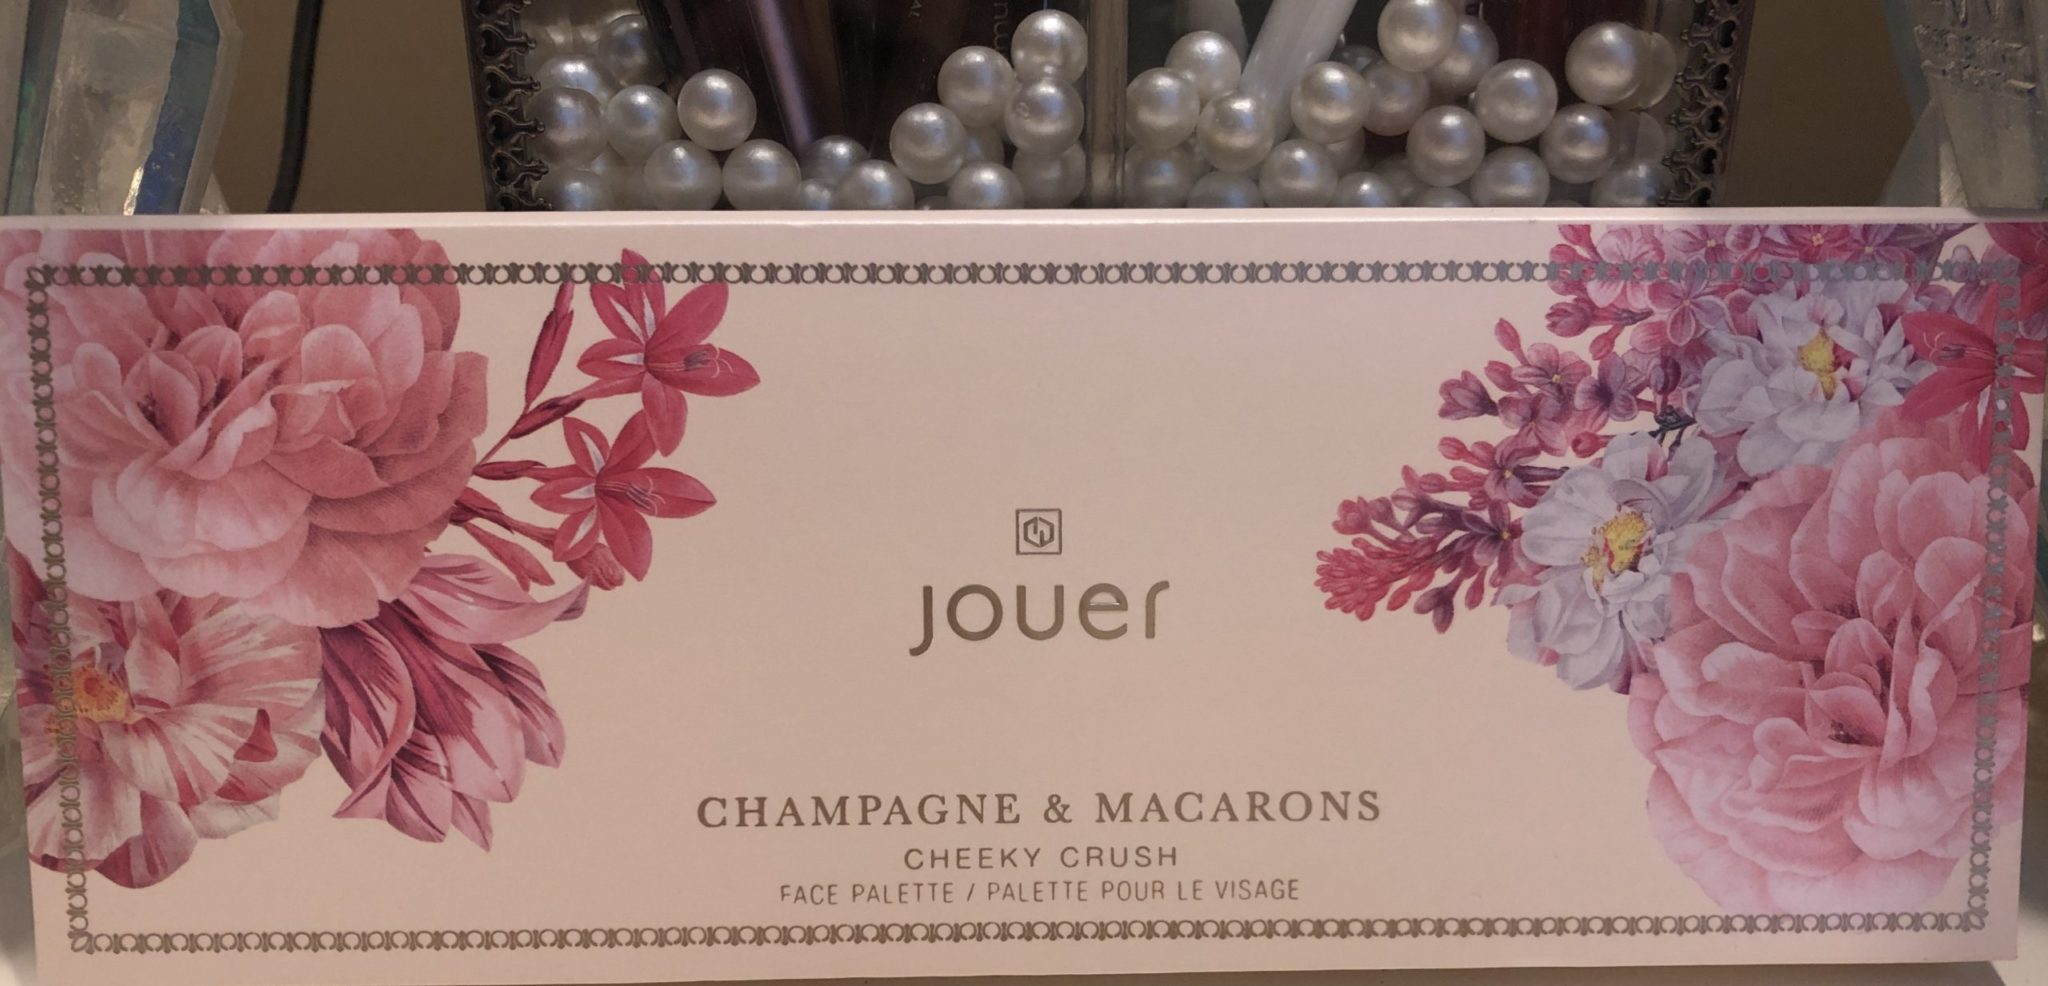 THTHE JOUER CHAMPAGNE & MACARONS FACE PALETTE